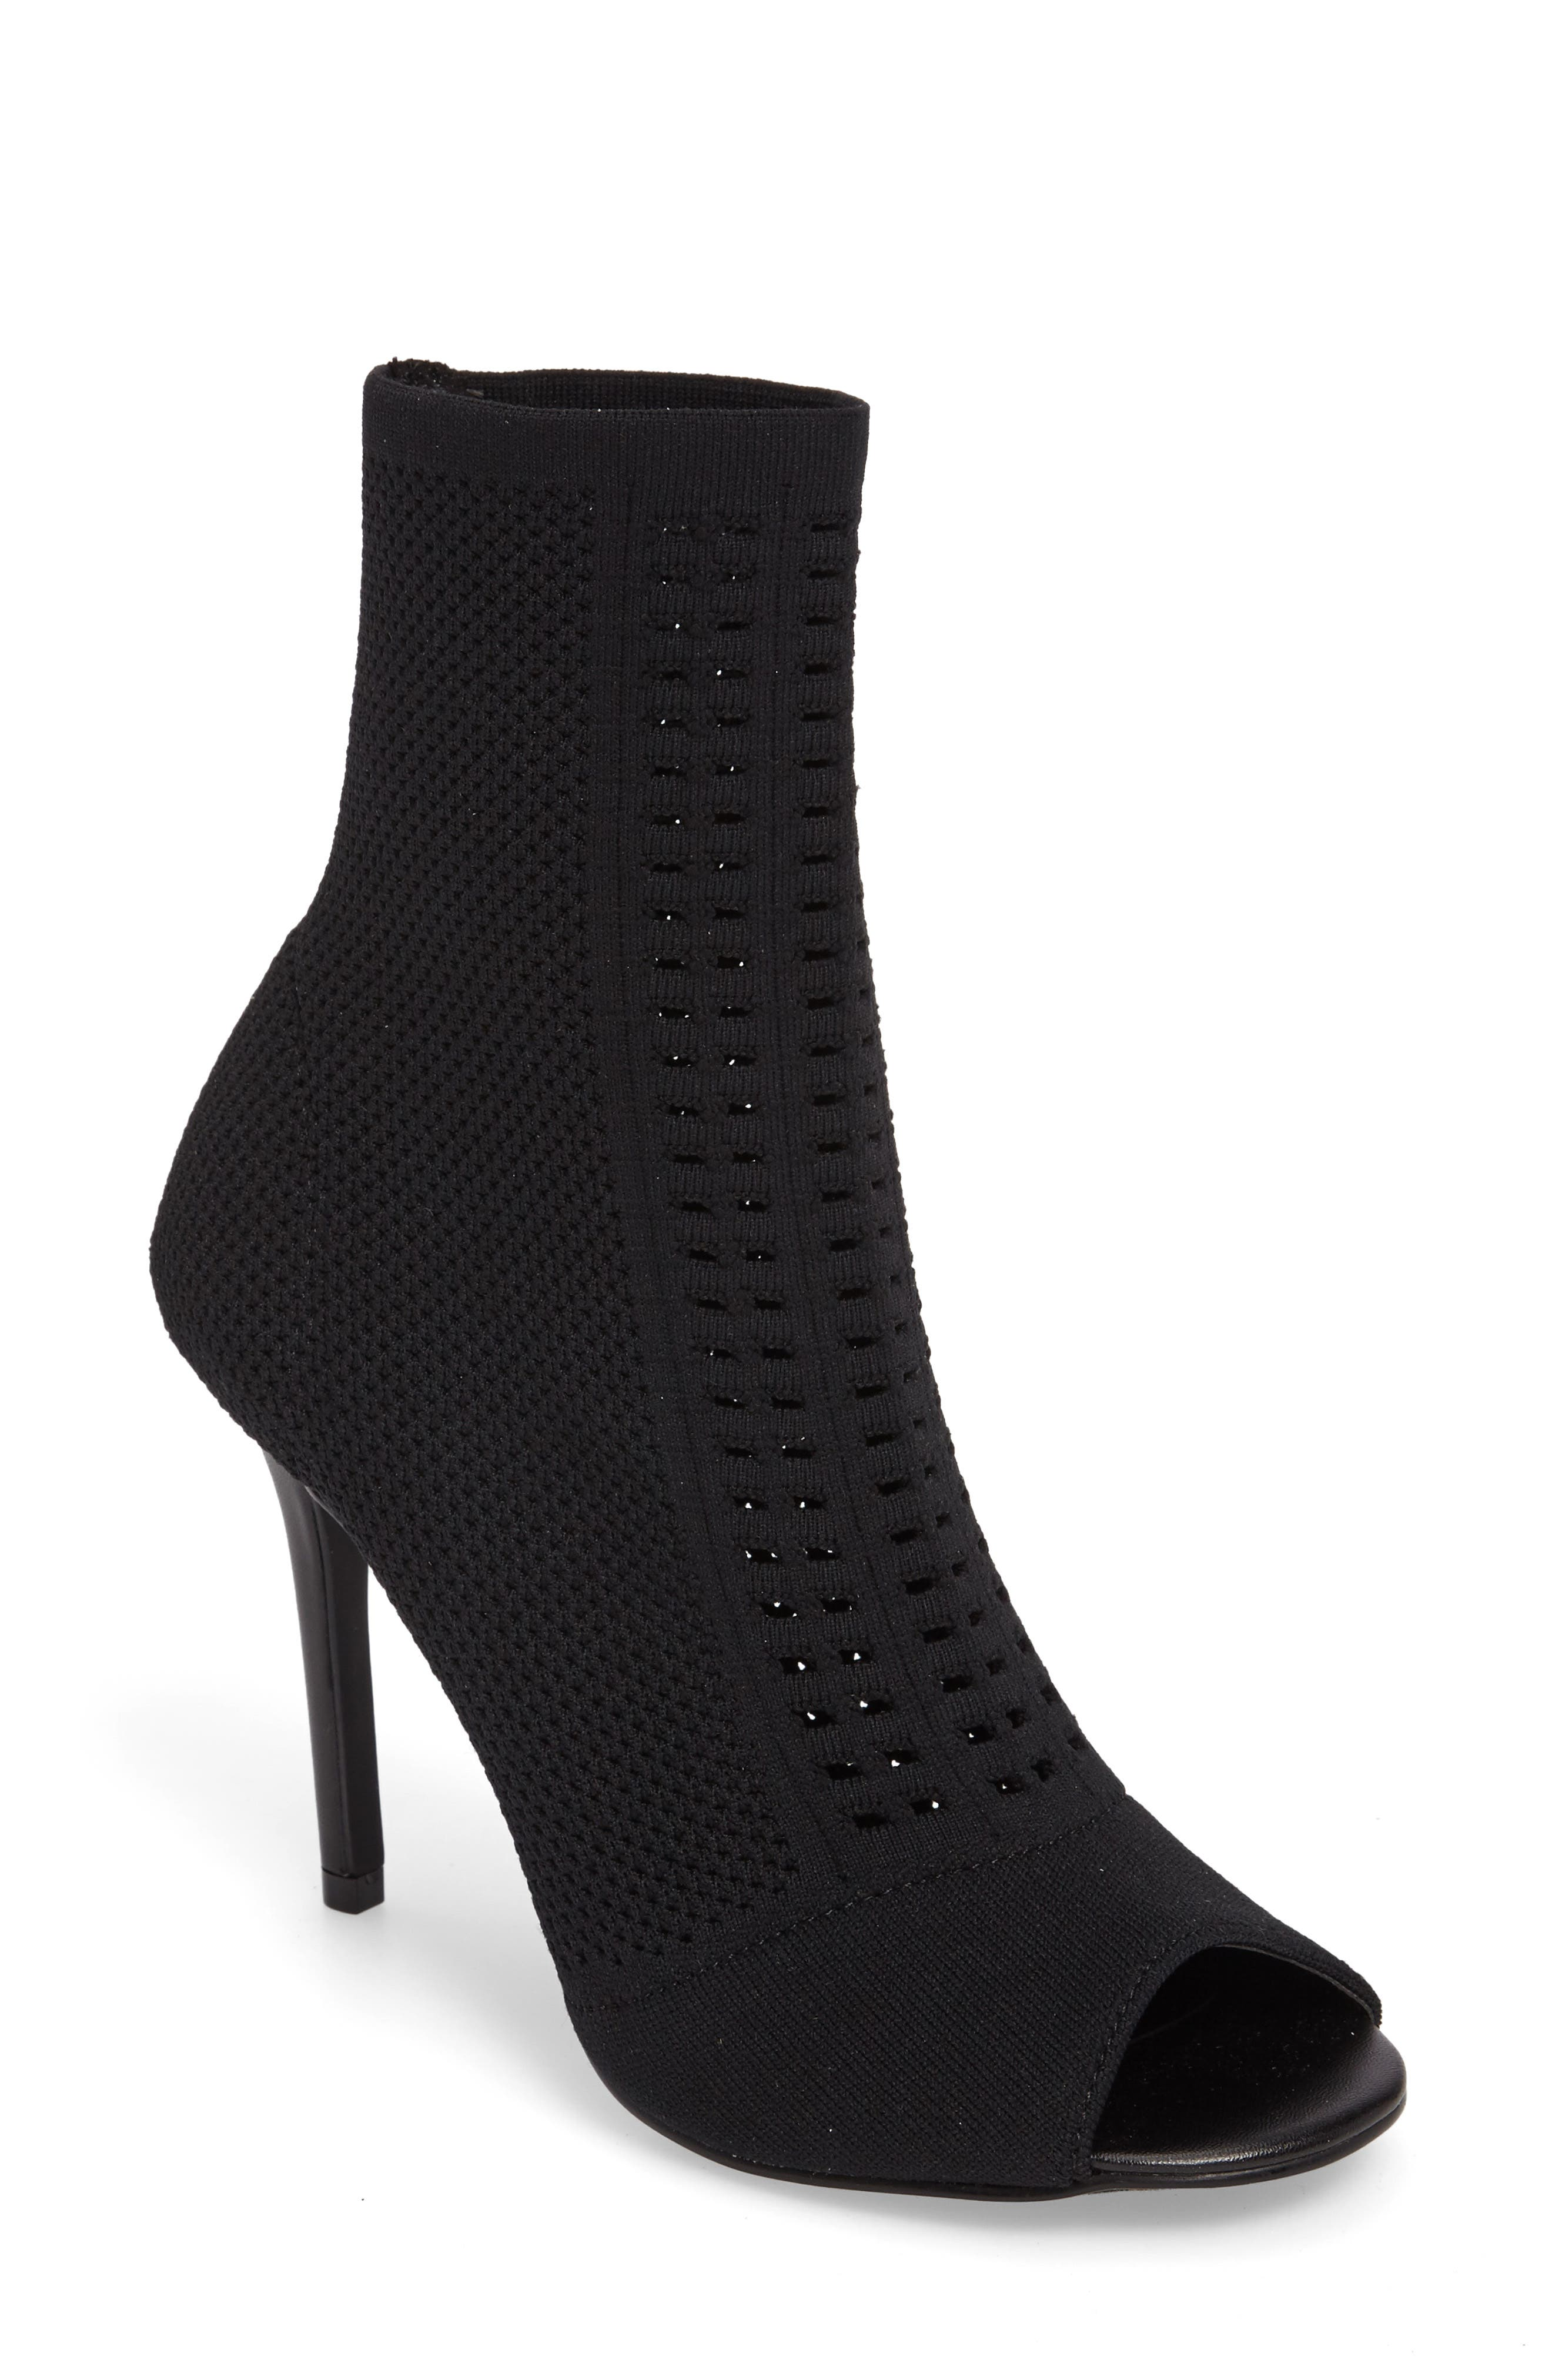 CHARLES BY CHARLES DAVID Rebellious Knit Peep Toe Bootie, Main, color, 001